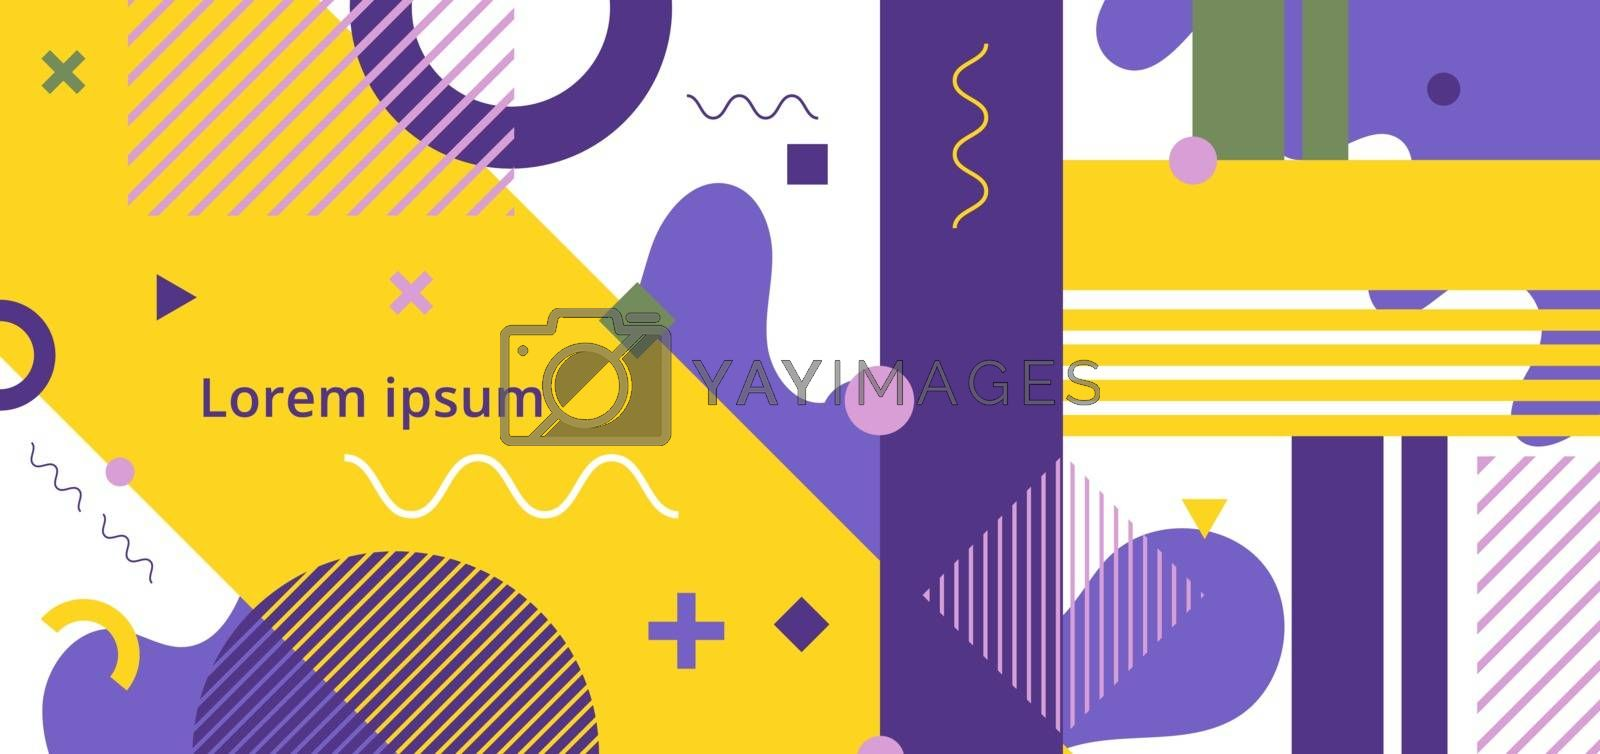 Abstract minimal geometric pattern memphis style white background. You can use for banner web design, presentation, poster, cover brochure, template, etc. Vector illustration